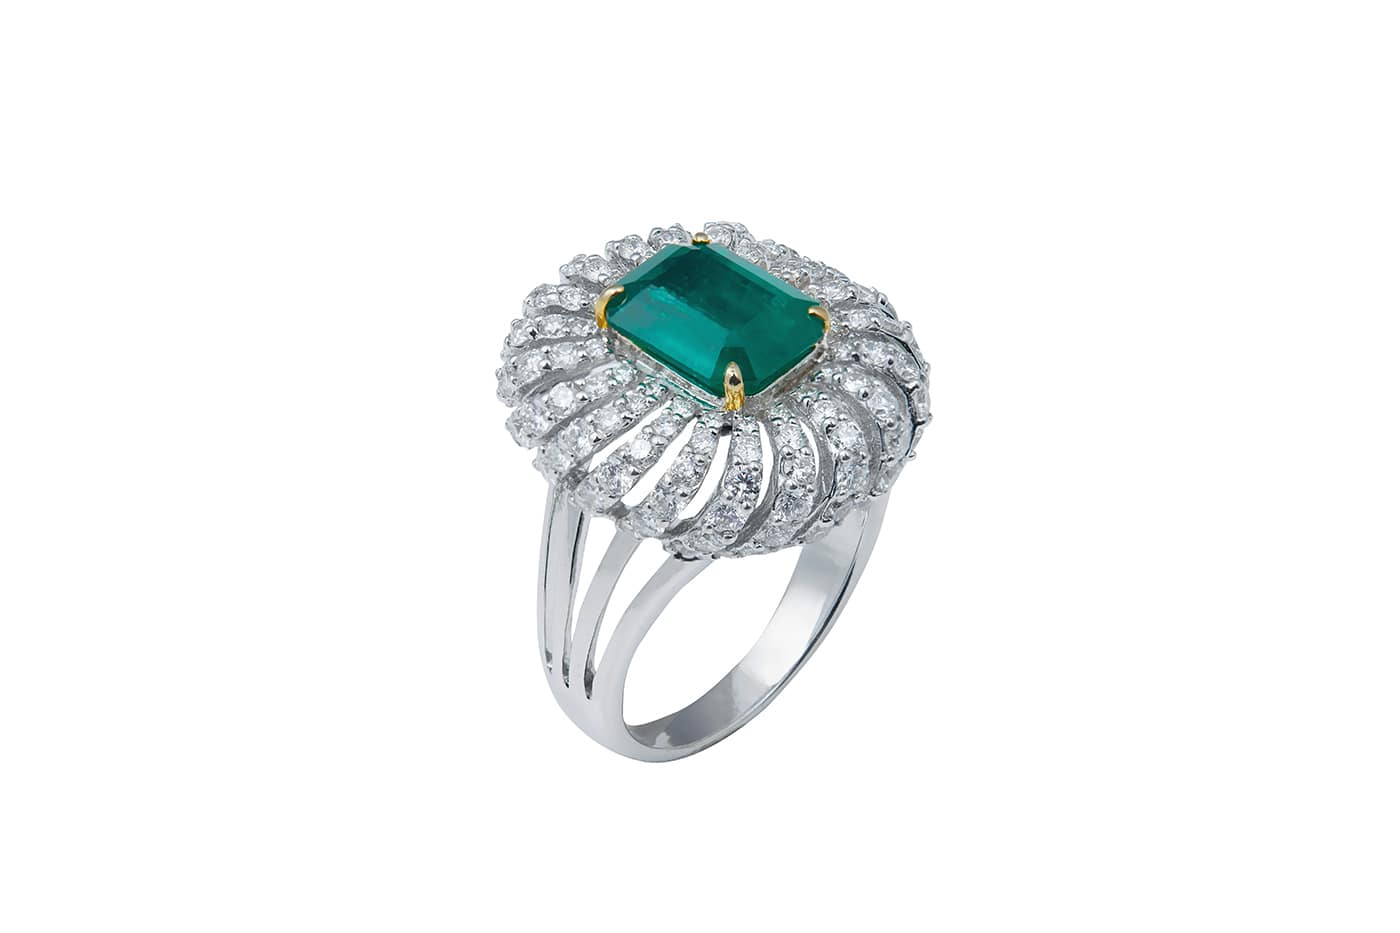 Zambian Emerald Diamond Ring